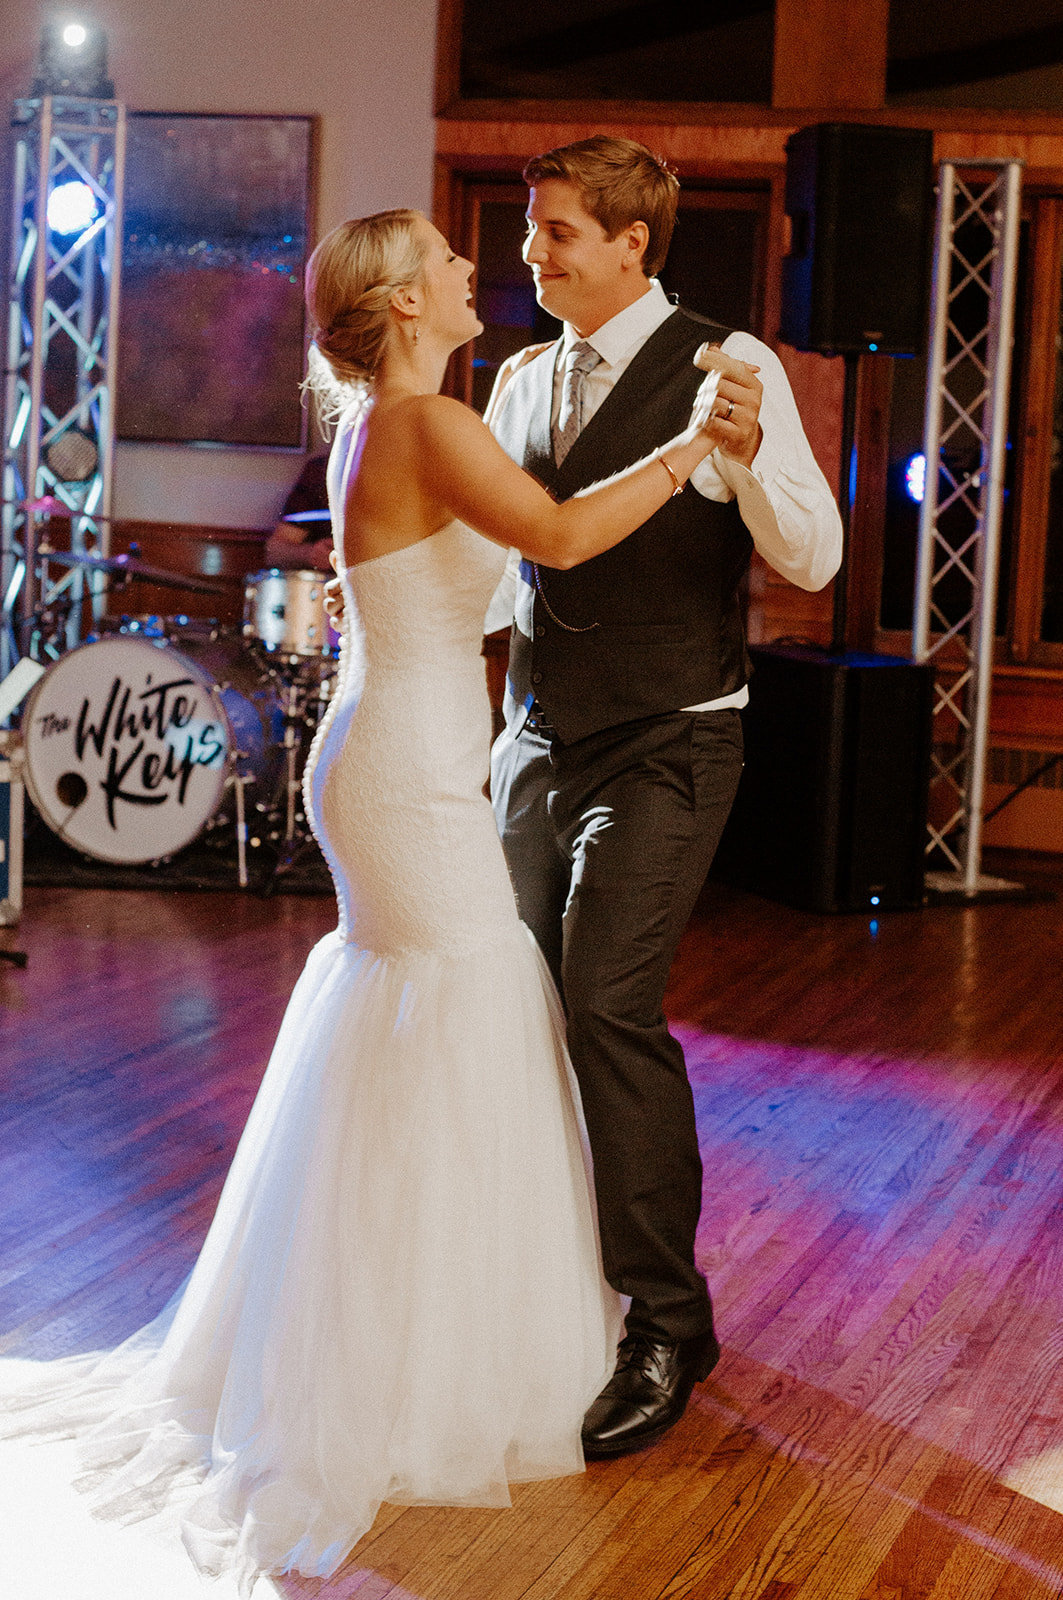 Bride and groom dancing together during their Minneapolis Wedding Reception